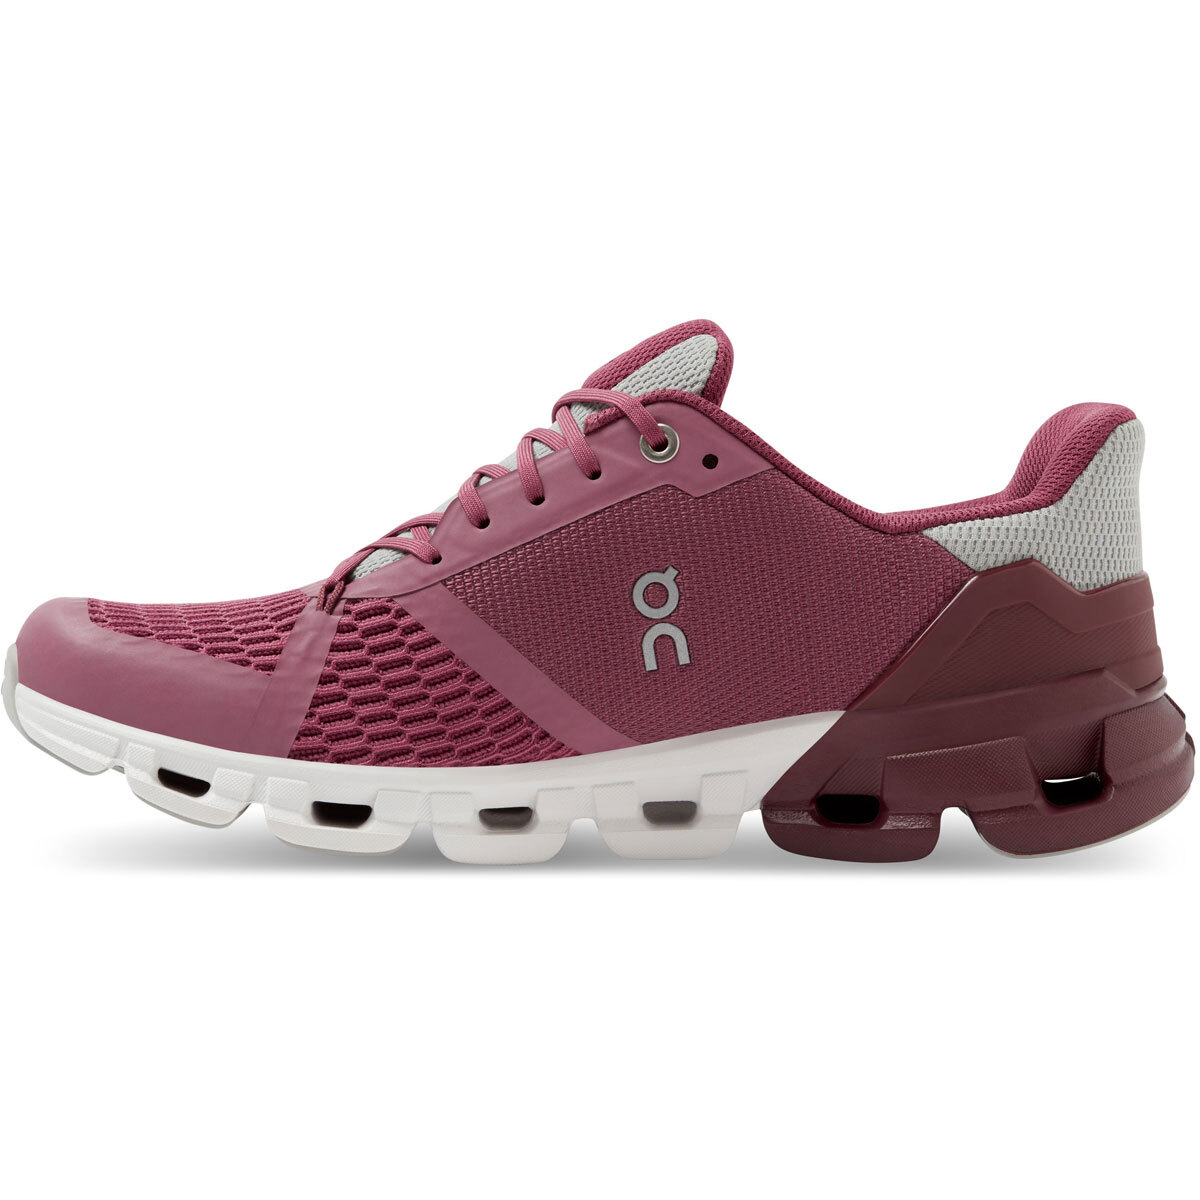 Women's On Cloudflyer 2.0 Running Shoe - Color: Magenta/Mulberry - Size: 5 - Width: Regular, Magenta/Mulberry, large, image 3